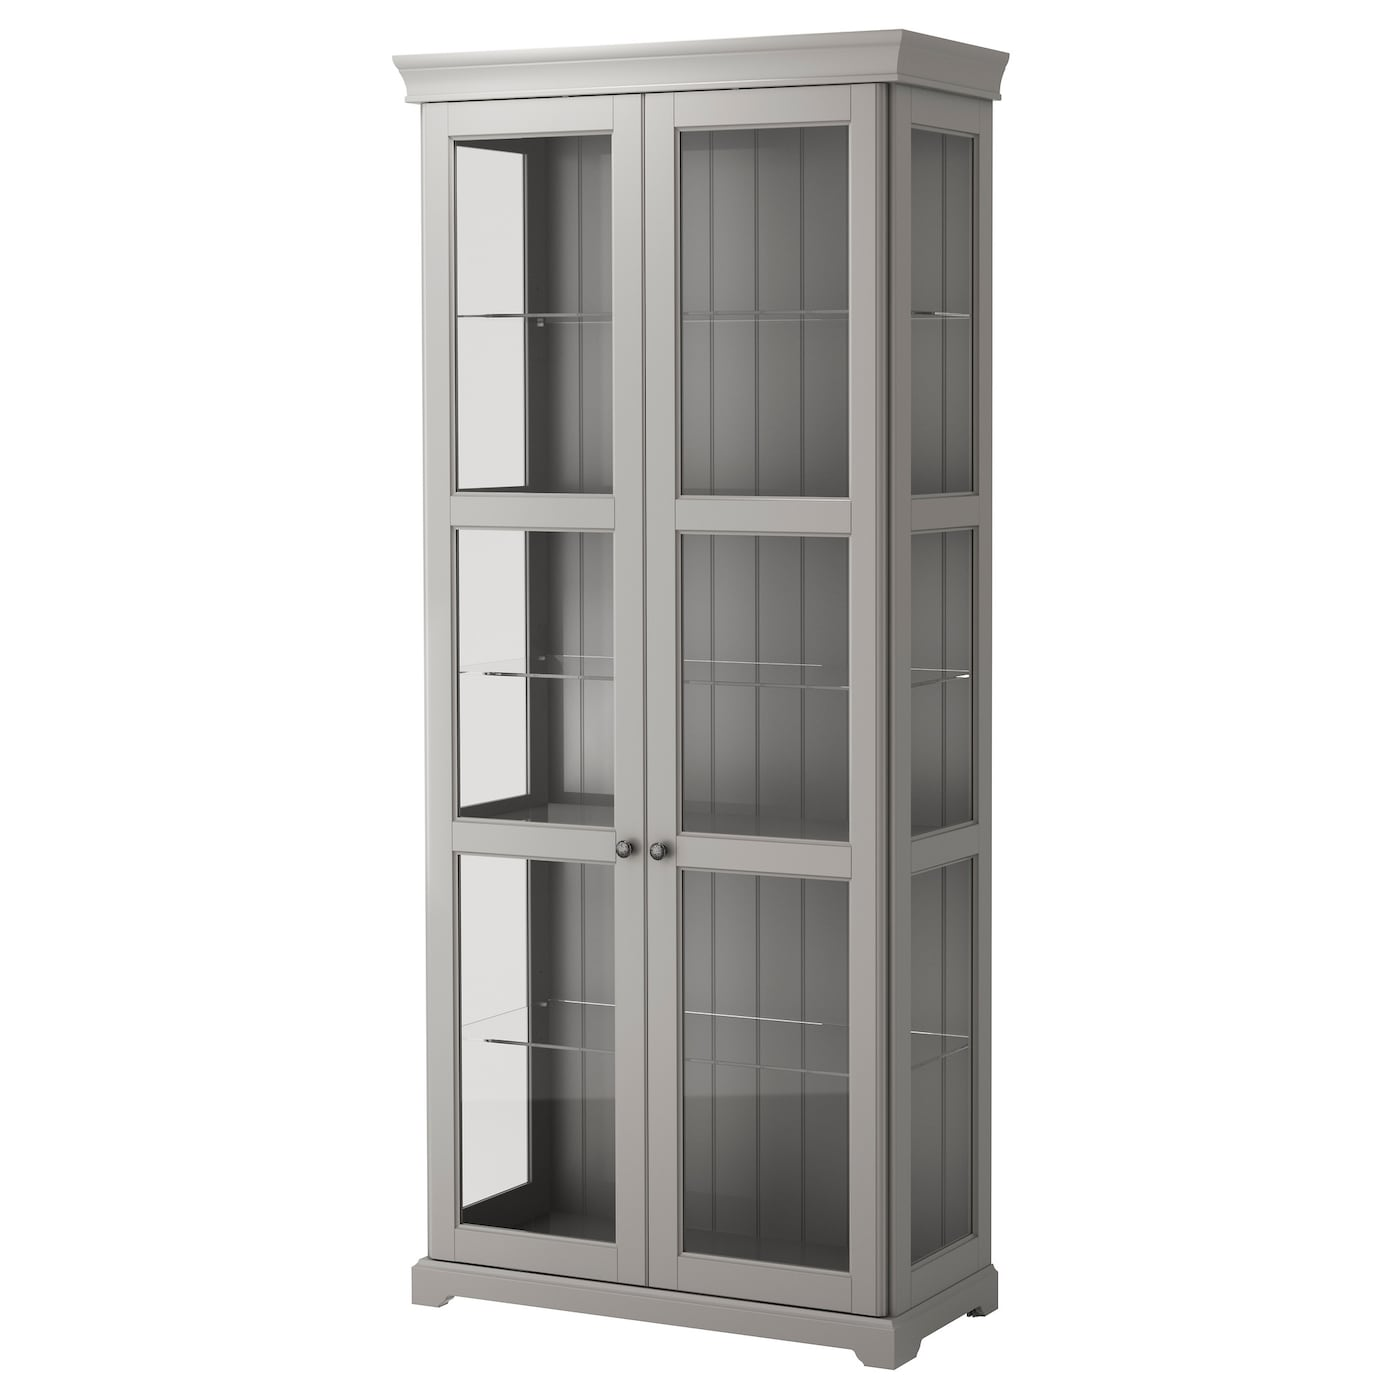 Kitchen cabinets 50cm depth - Ikea Liatorp Glass Door Cabinet 2 Fixed Shelves For High Stability